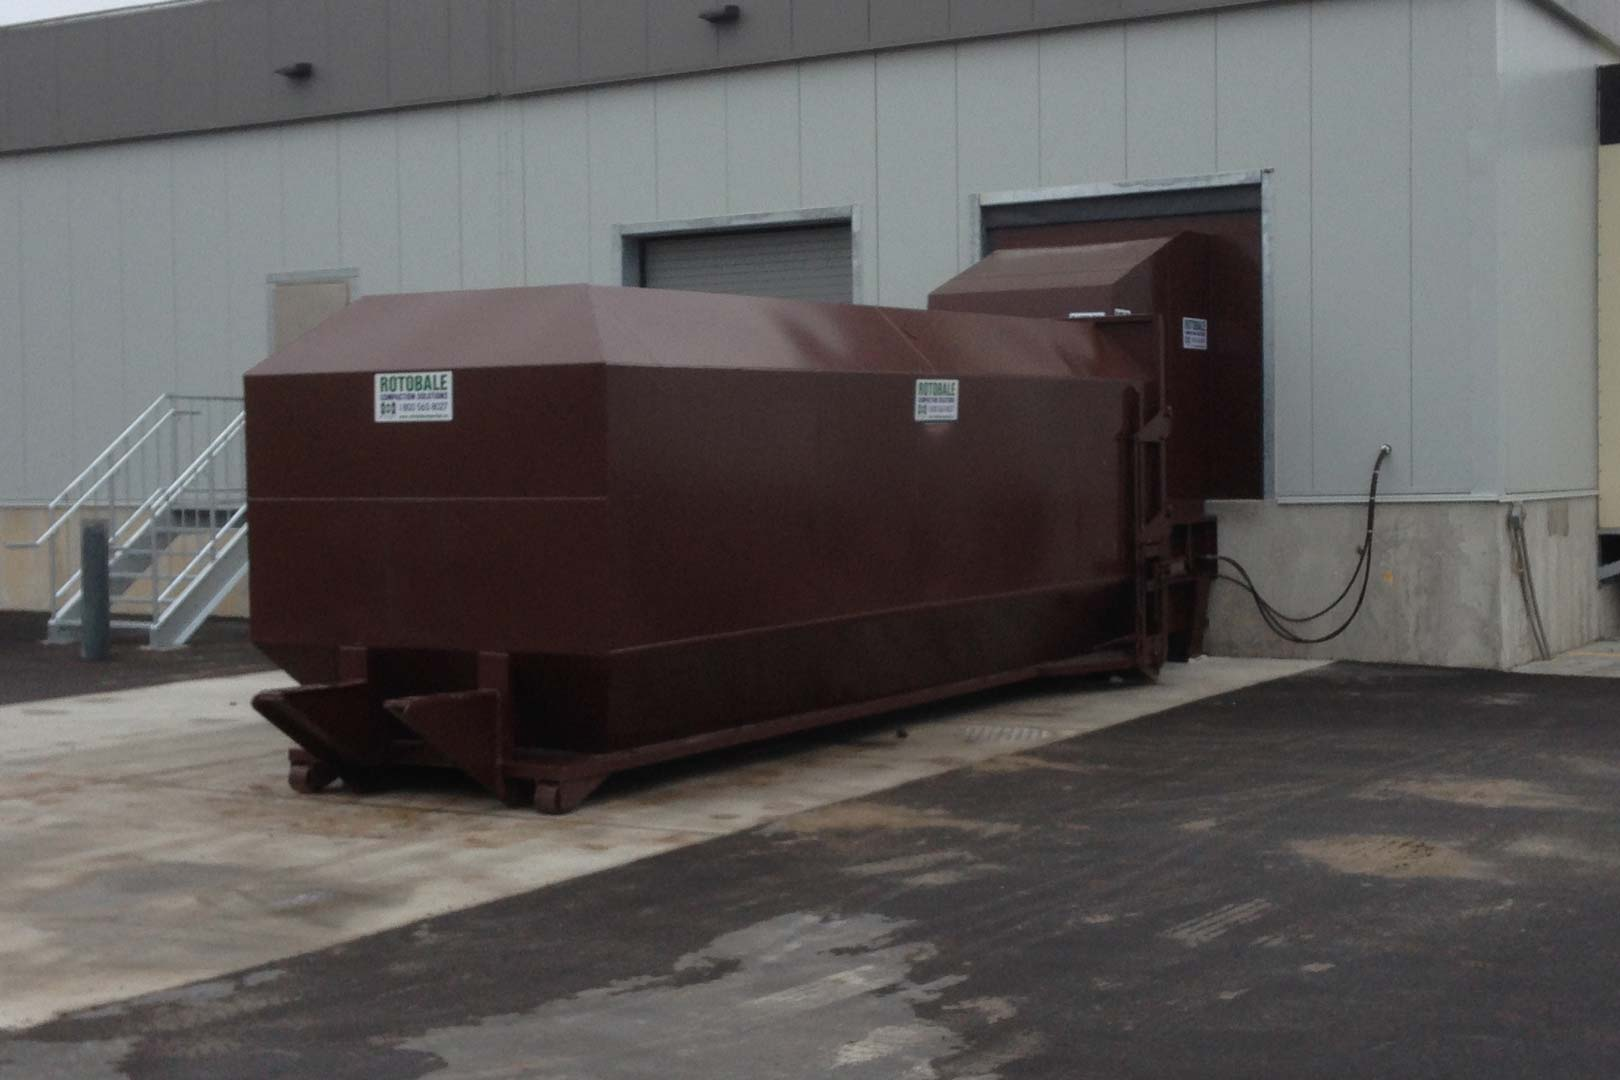 Self Contained Trash Compactor by Rotobale